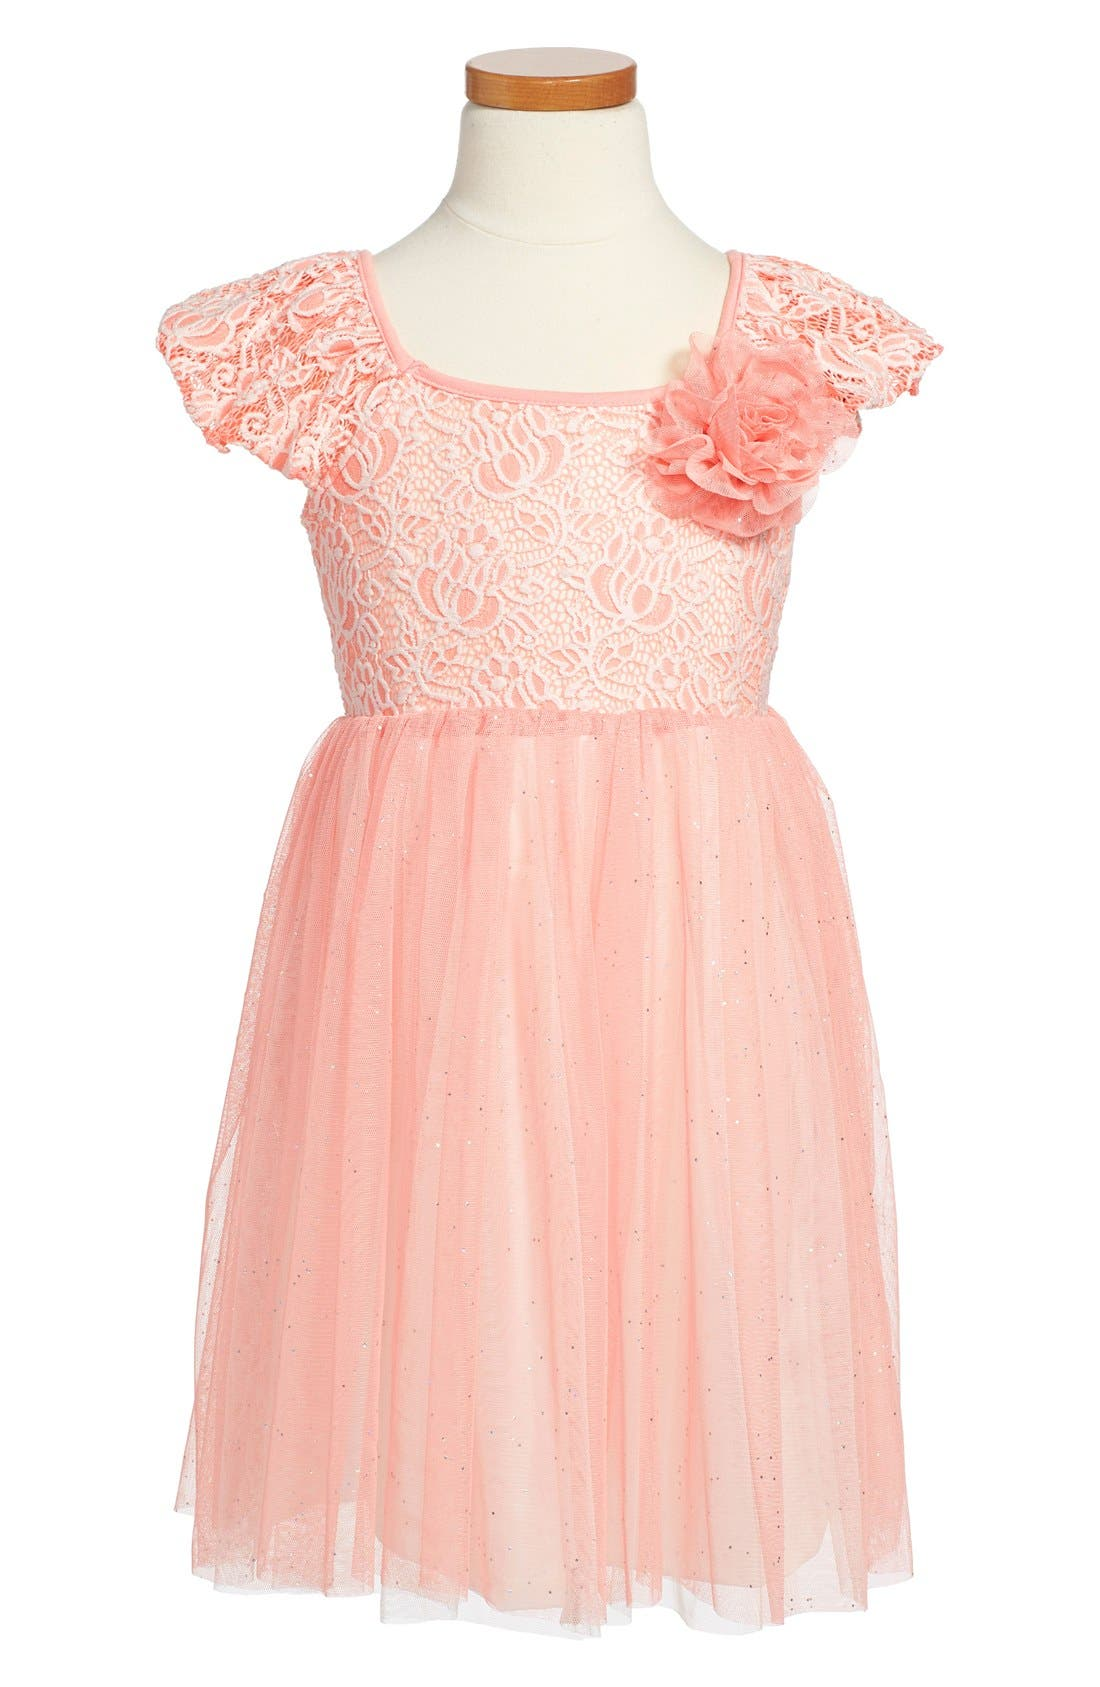 POPATU, Tulle Skirt Party Dress, Main thumbnail 1, color, PINK